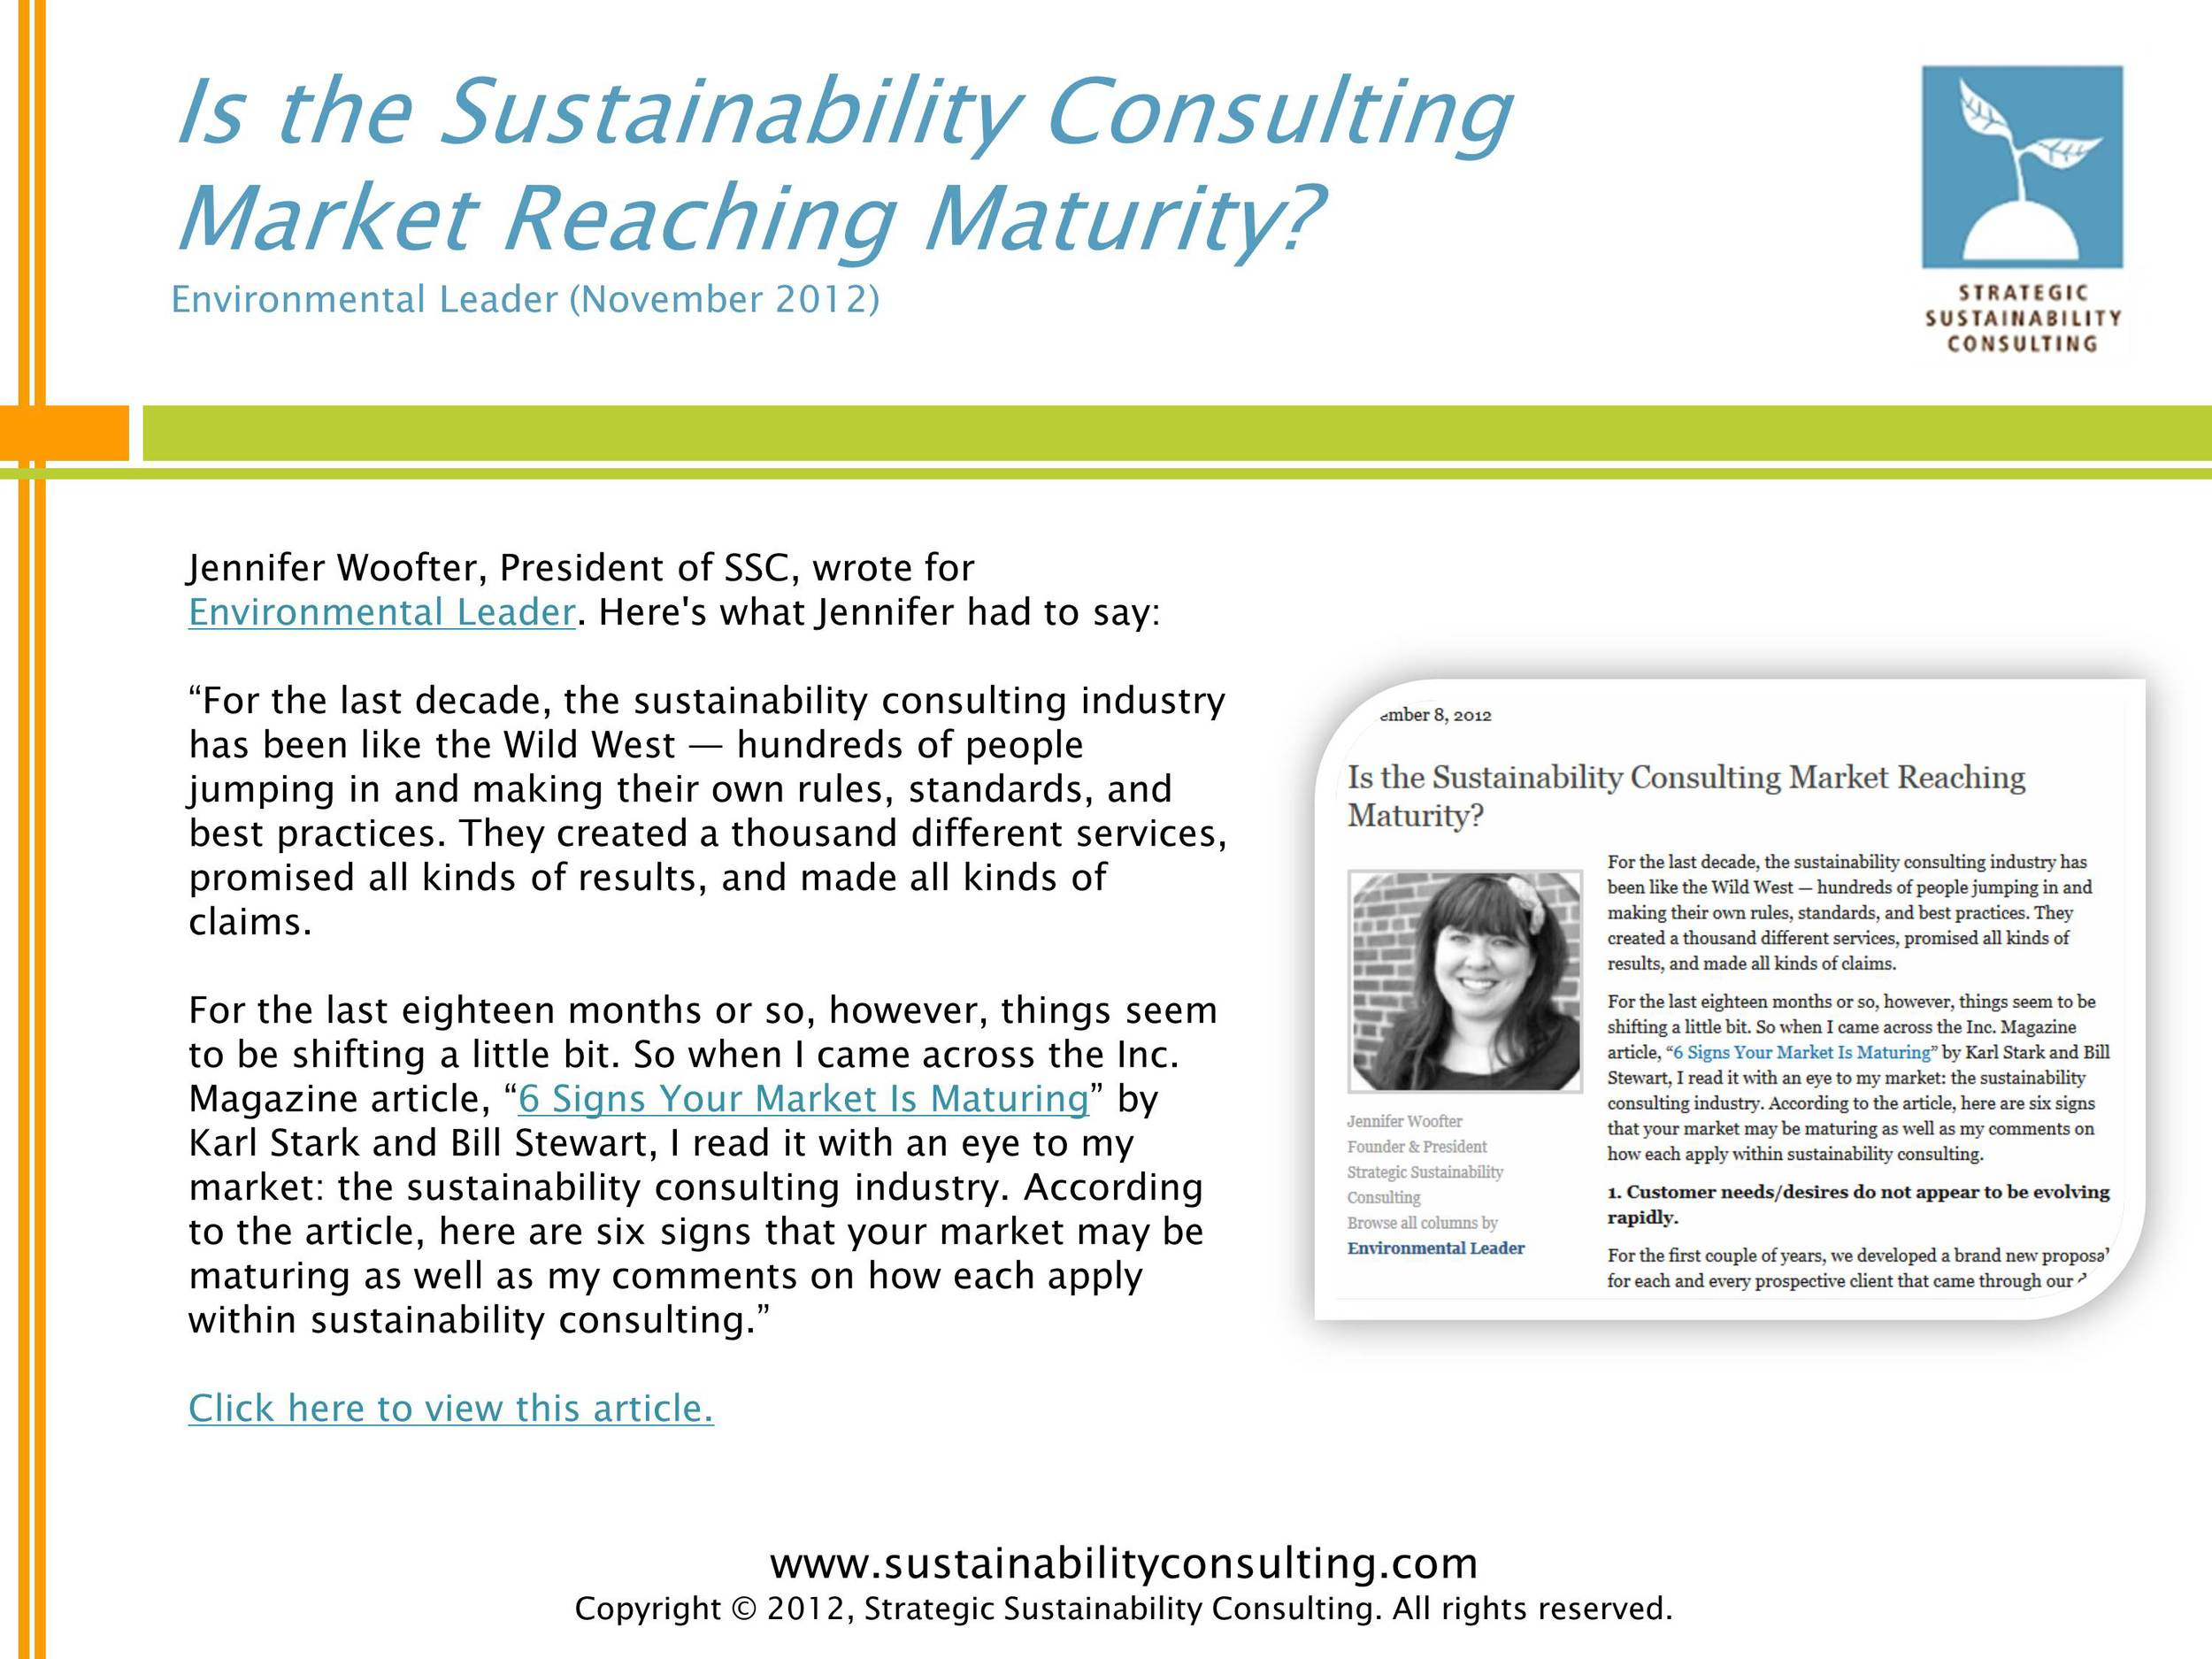 Is the Sustainability Consulting Market Reaching Maturity?